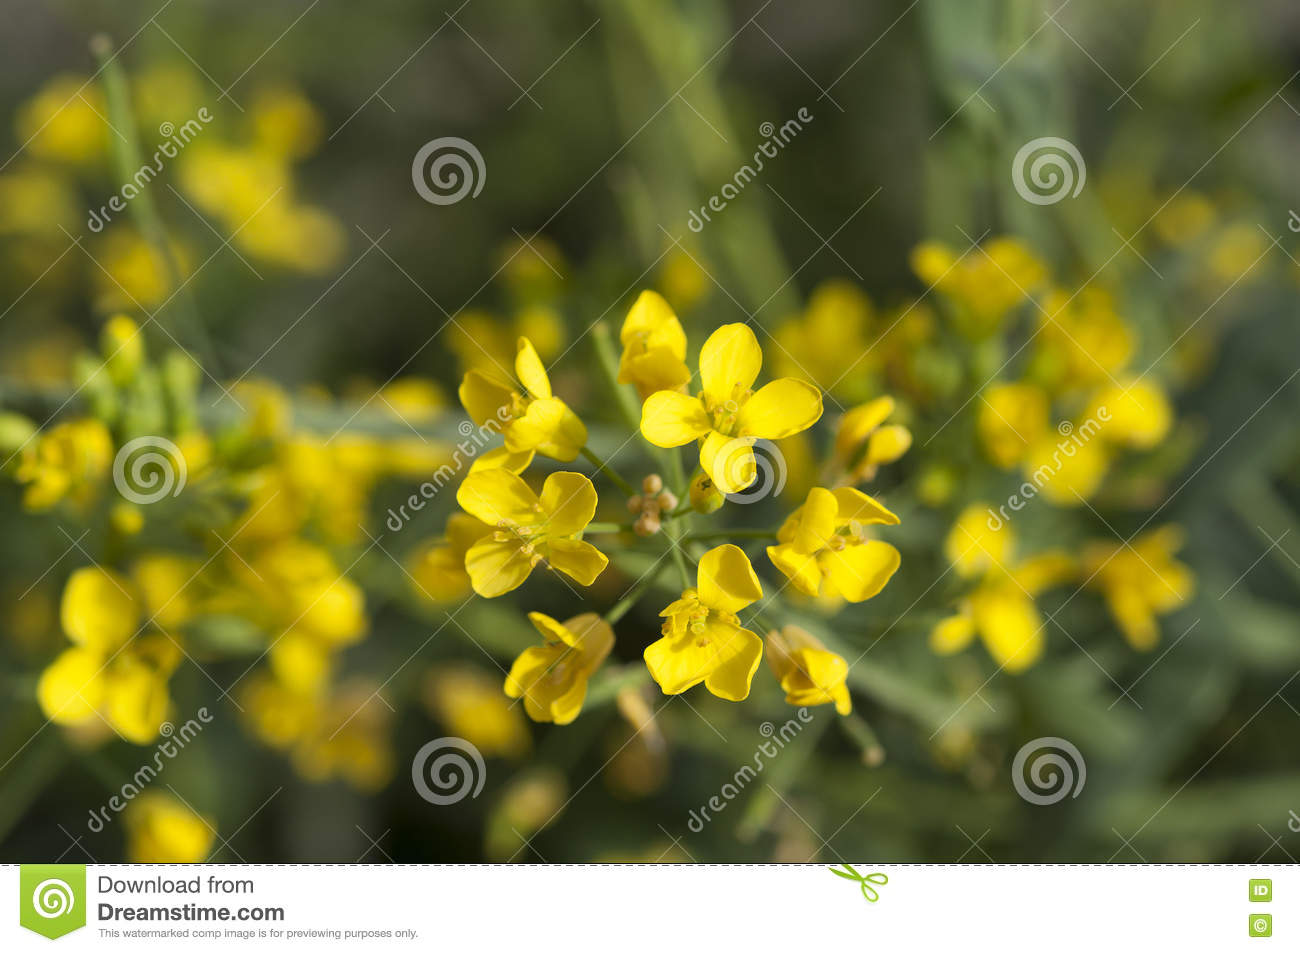 Mustard yellow flowers stock image image of wasteland 68647417 download mustard yellow flowers stock image image of wasteland 68647417 mightylinksfo